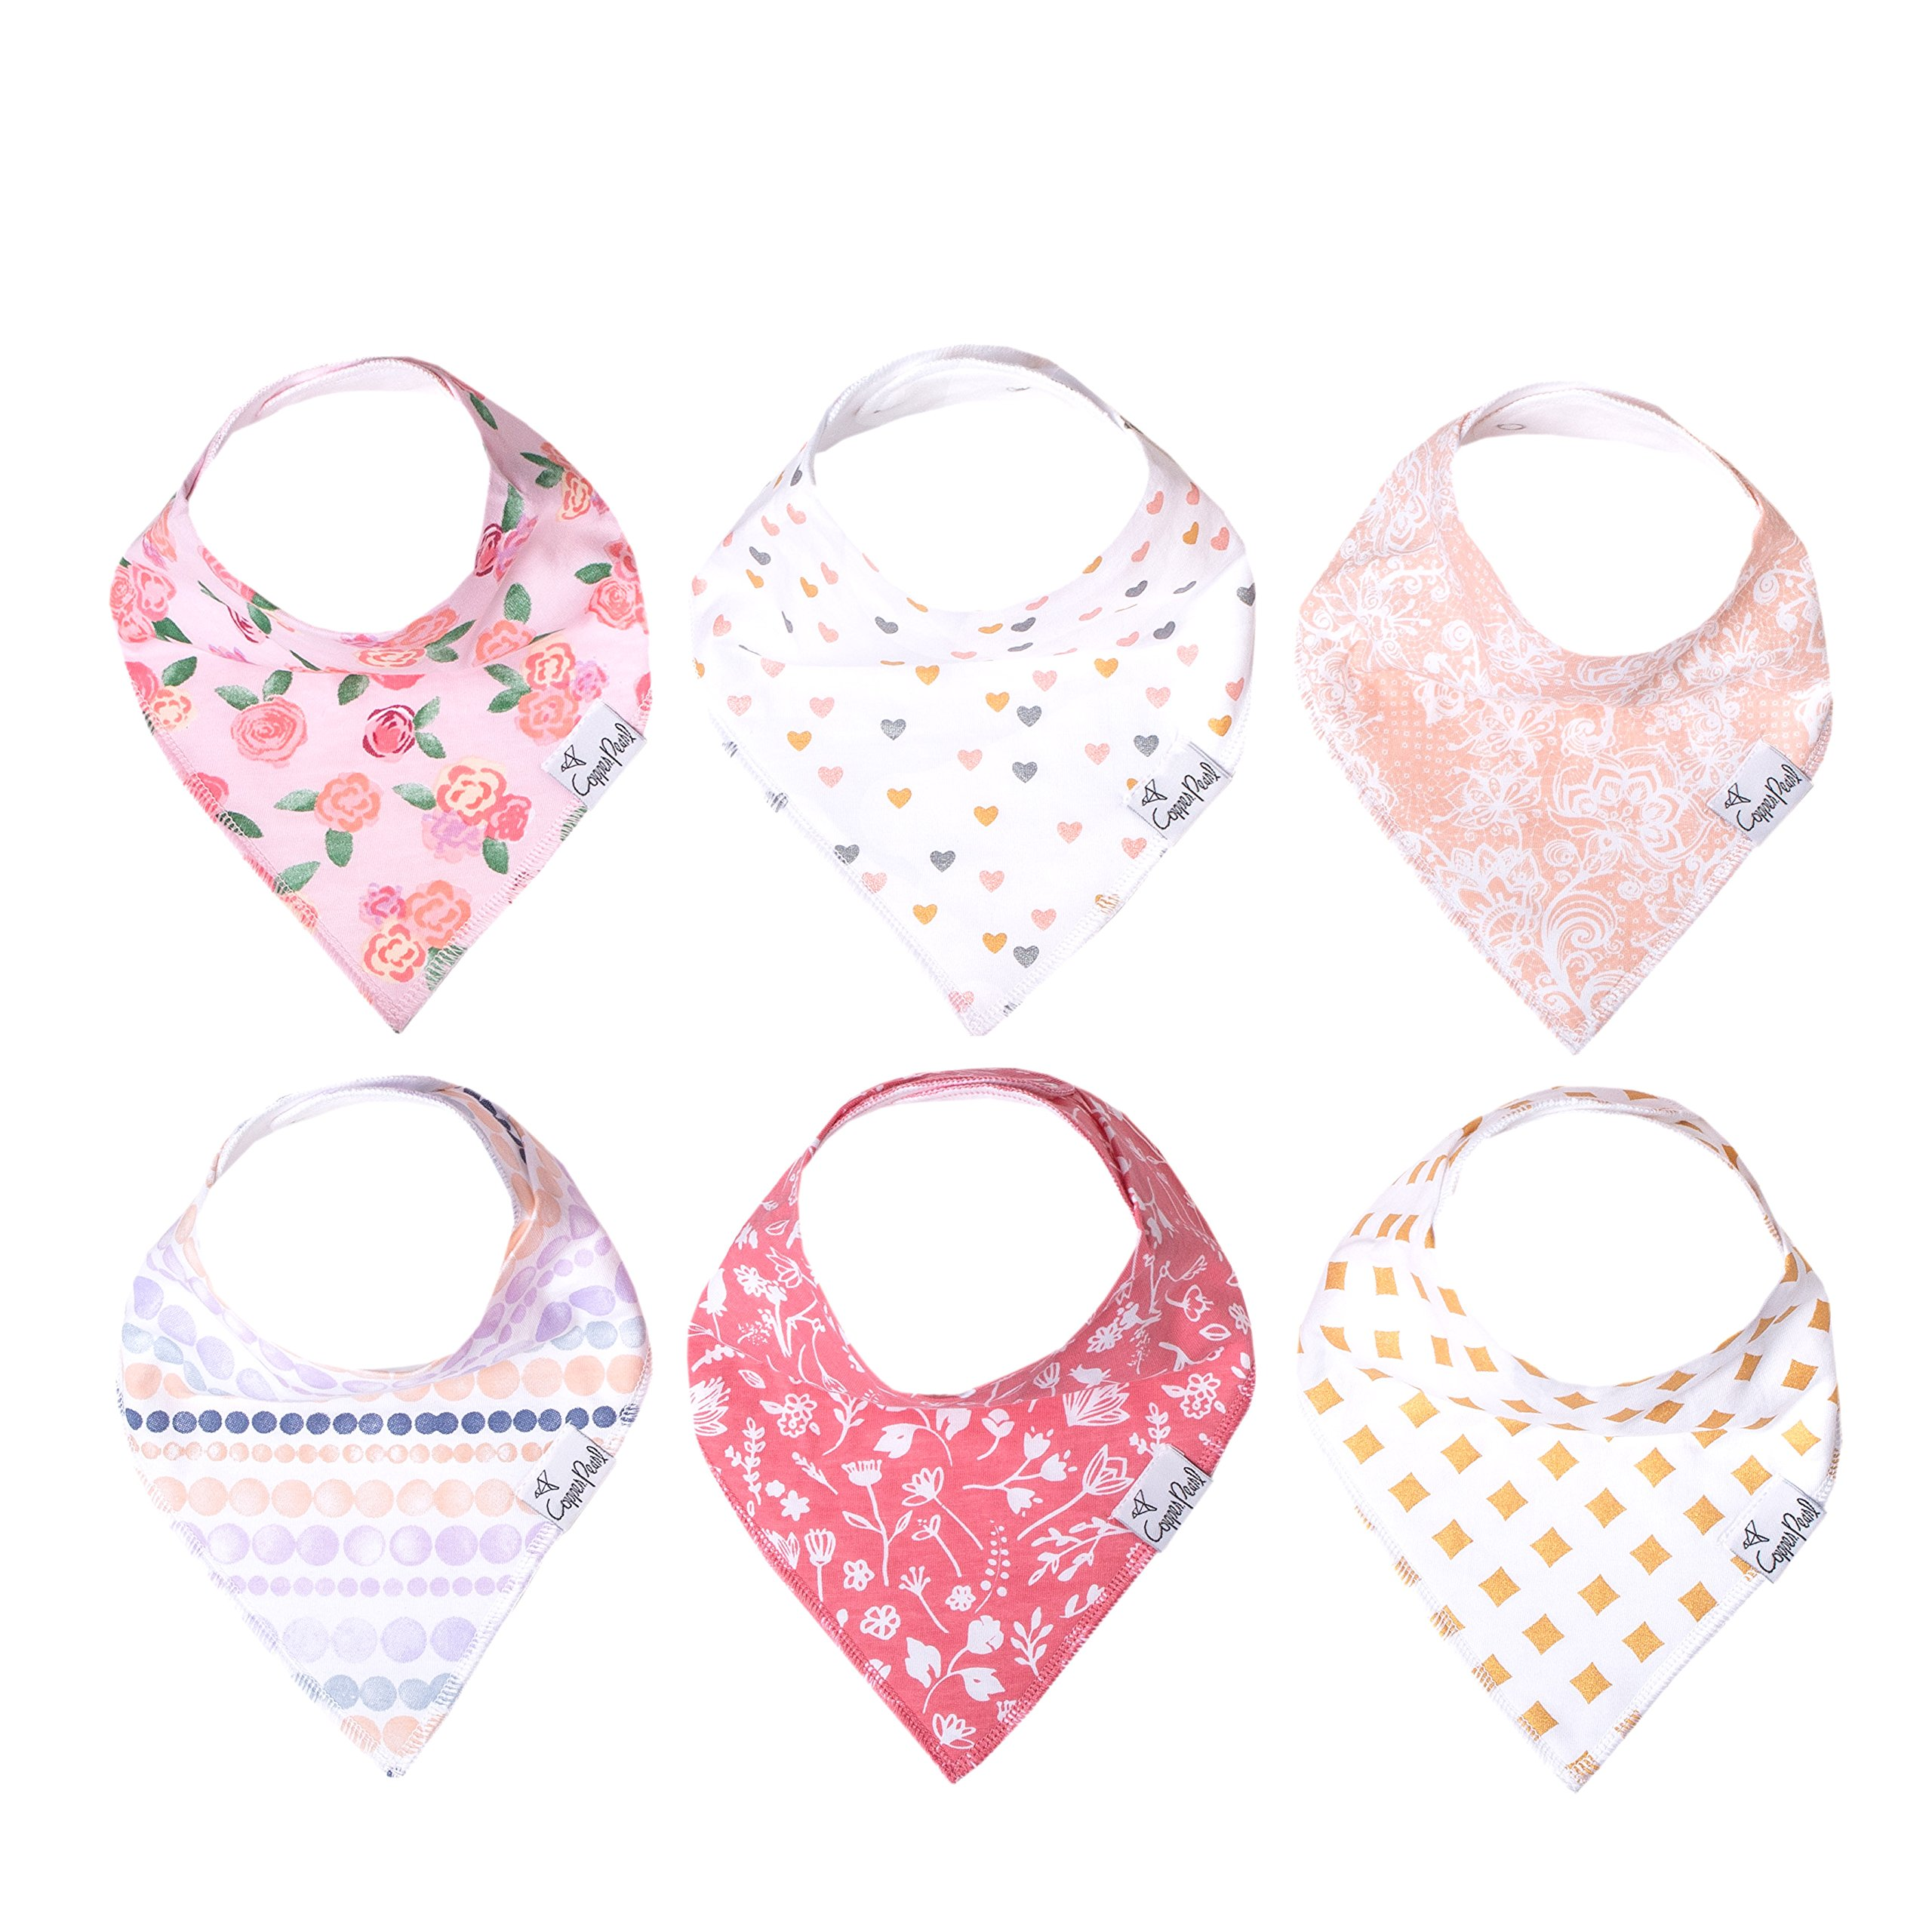 """Baby Bandana Drool Bibs for Drooling and Teething 6 Pack Gift Set For Girls """"Amelia Set'' by Copper Pearl"""